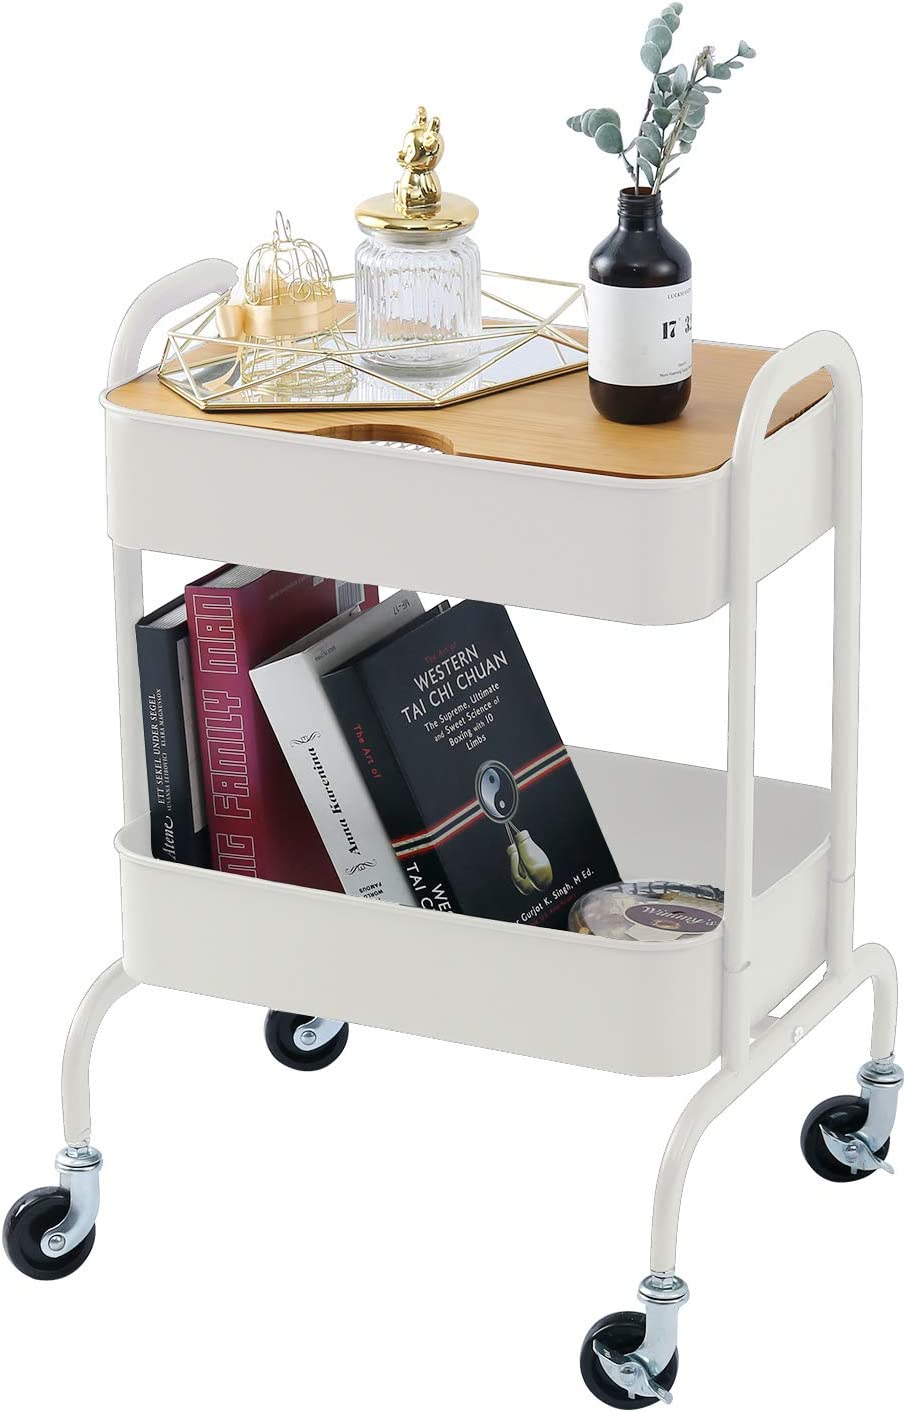 2-Tier Metal Utility Rolling Cart Storage Side End Table with Cover Board and Handle for Office Home Kitchen Organization, Cream White